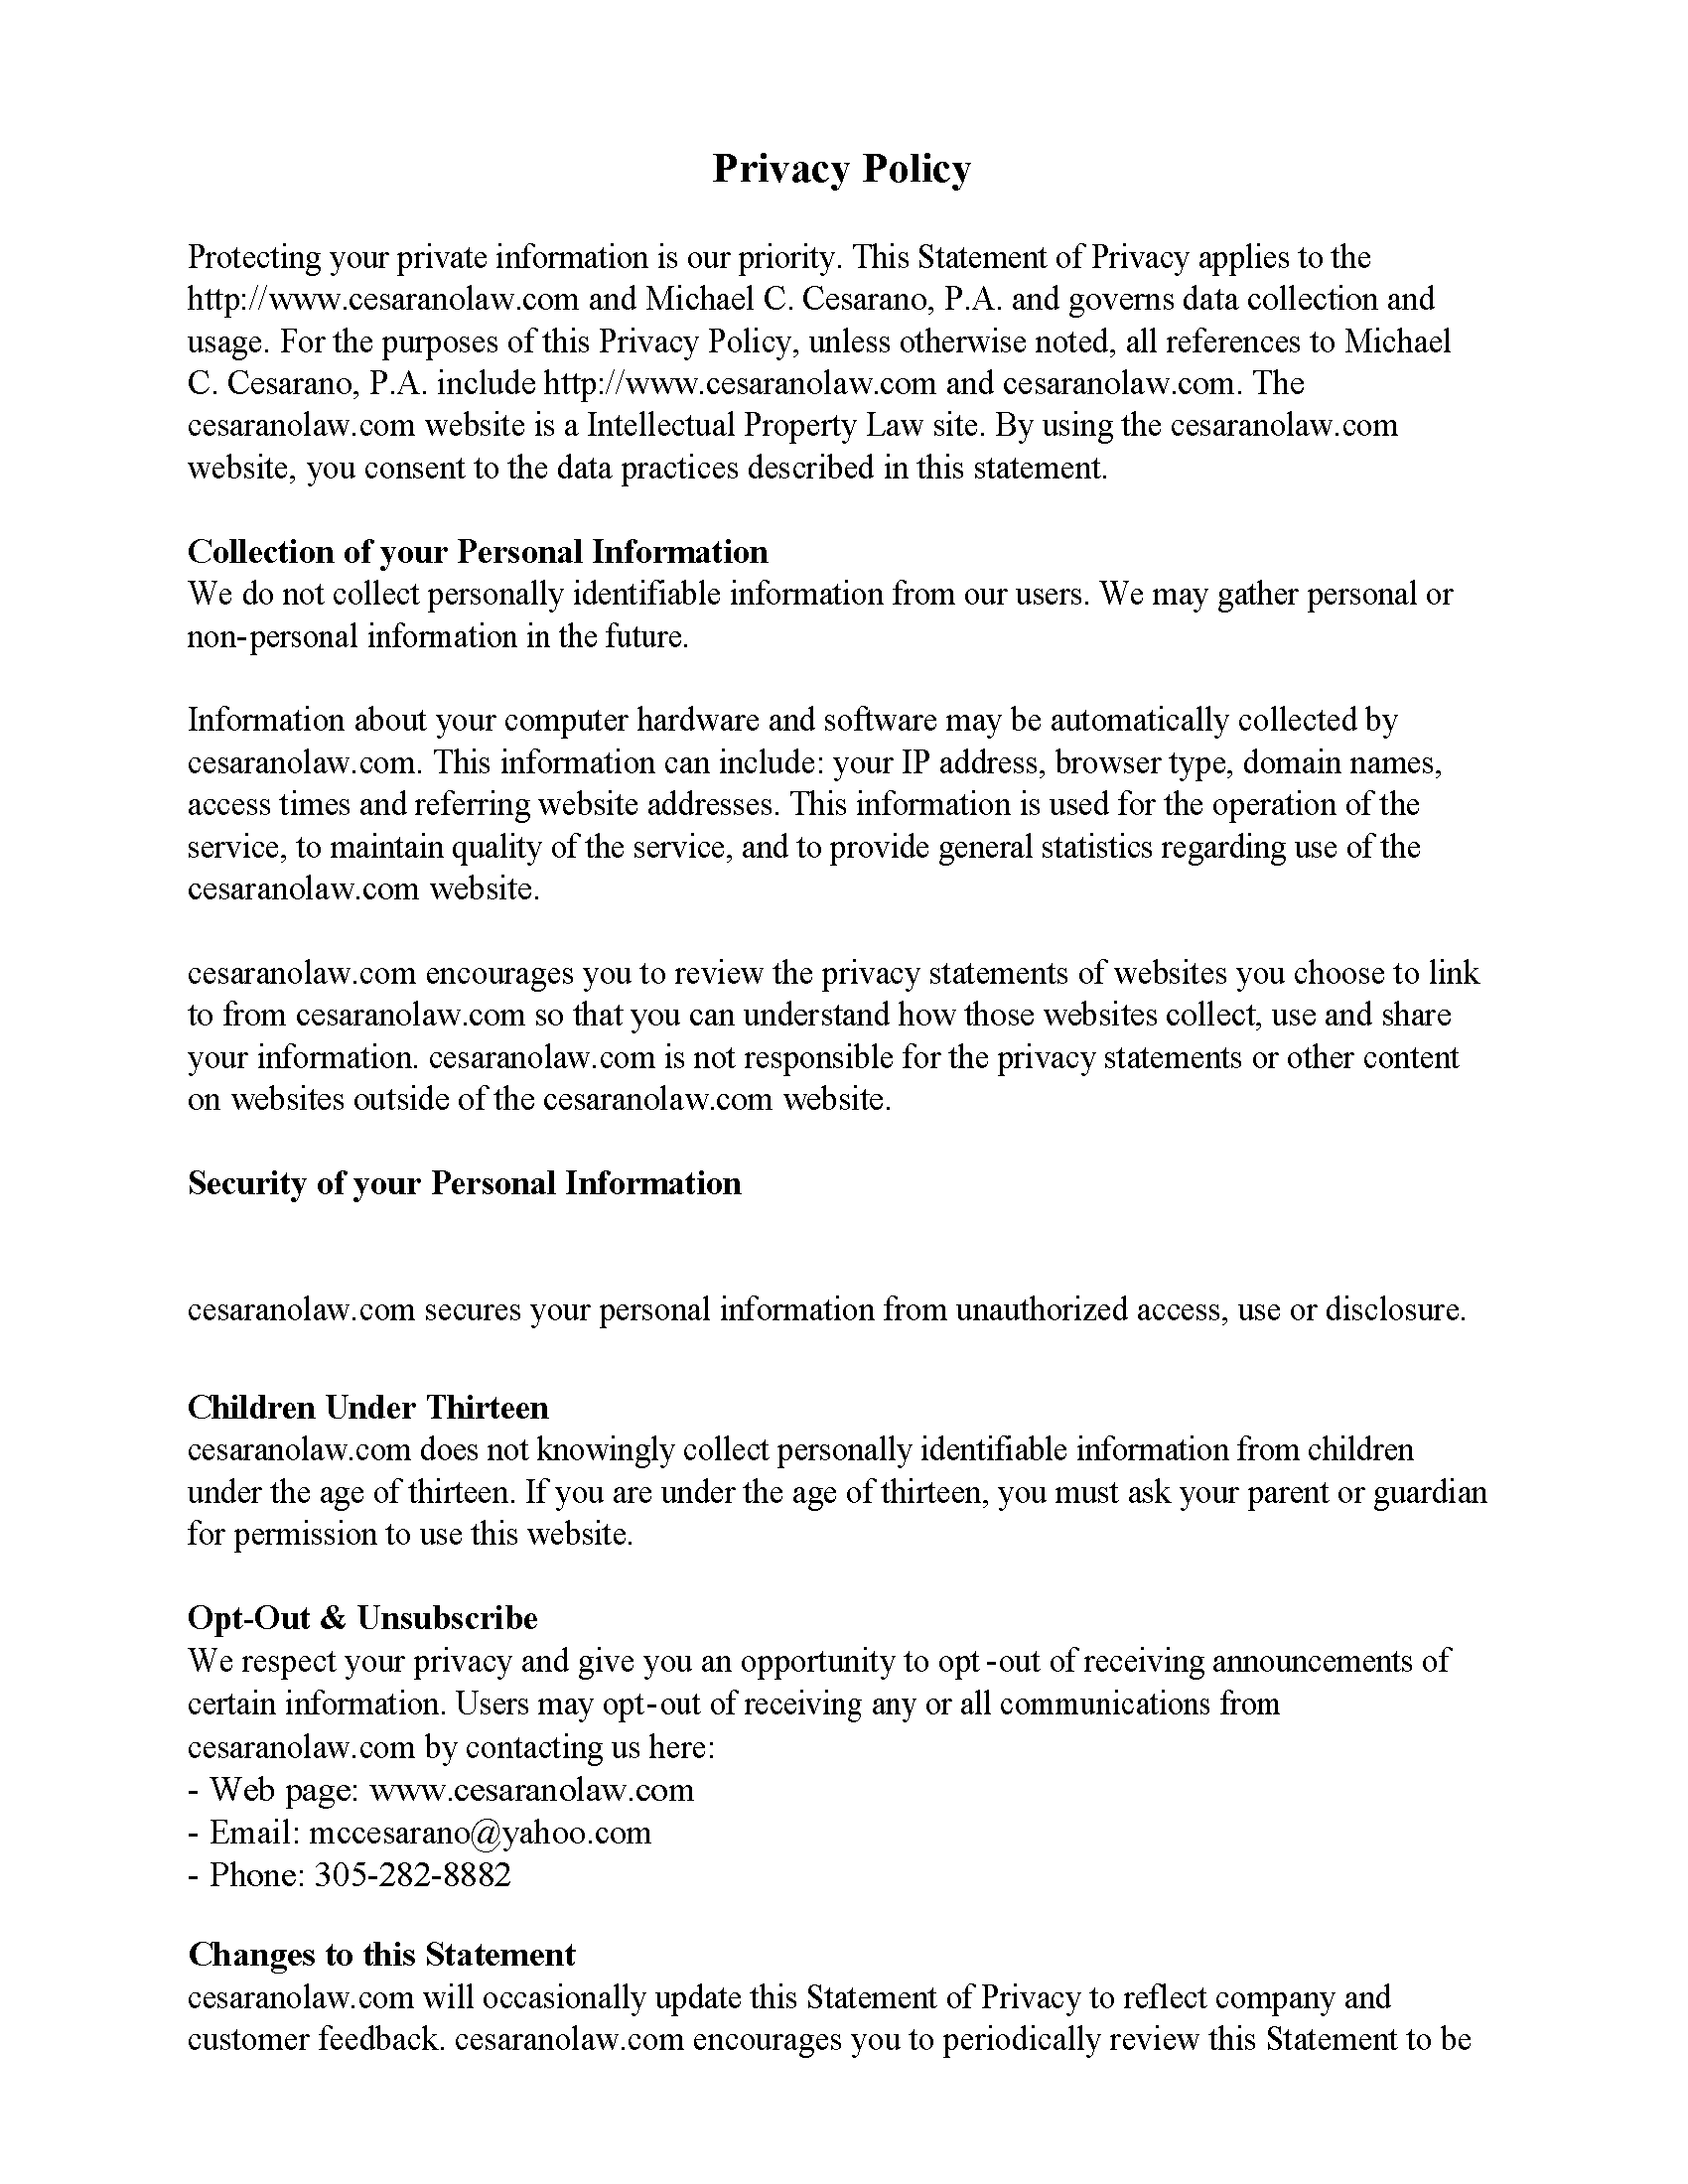 Privacy Policy Statement Sample and Privacy Policy Page 1